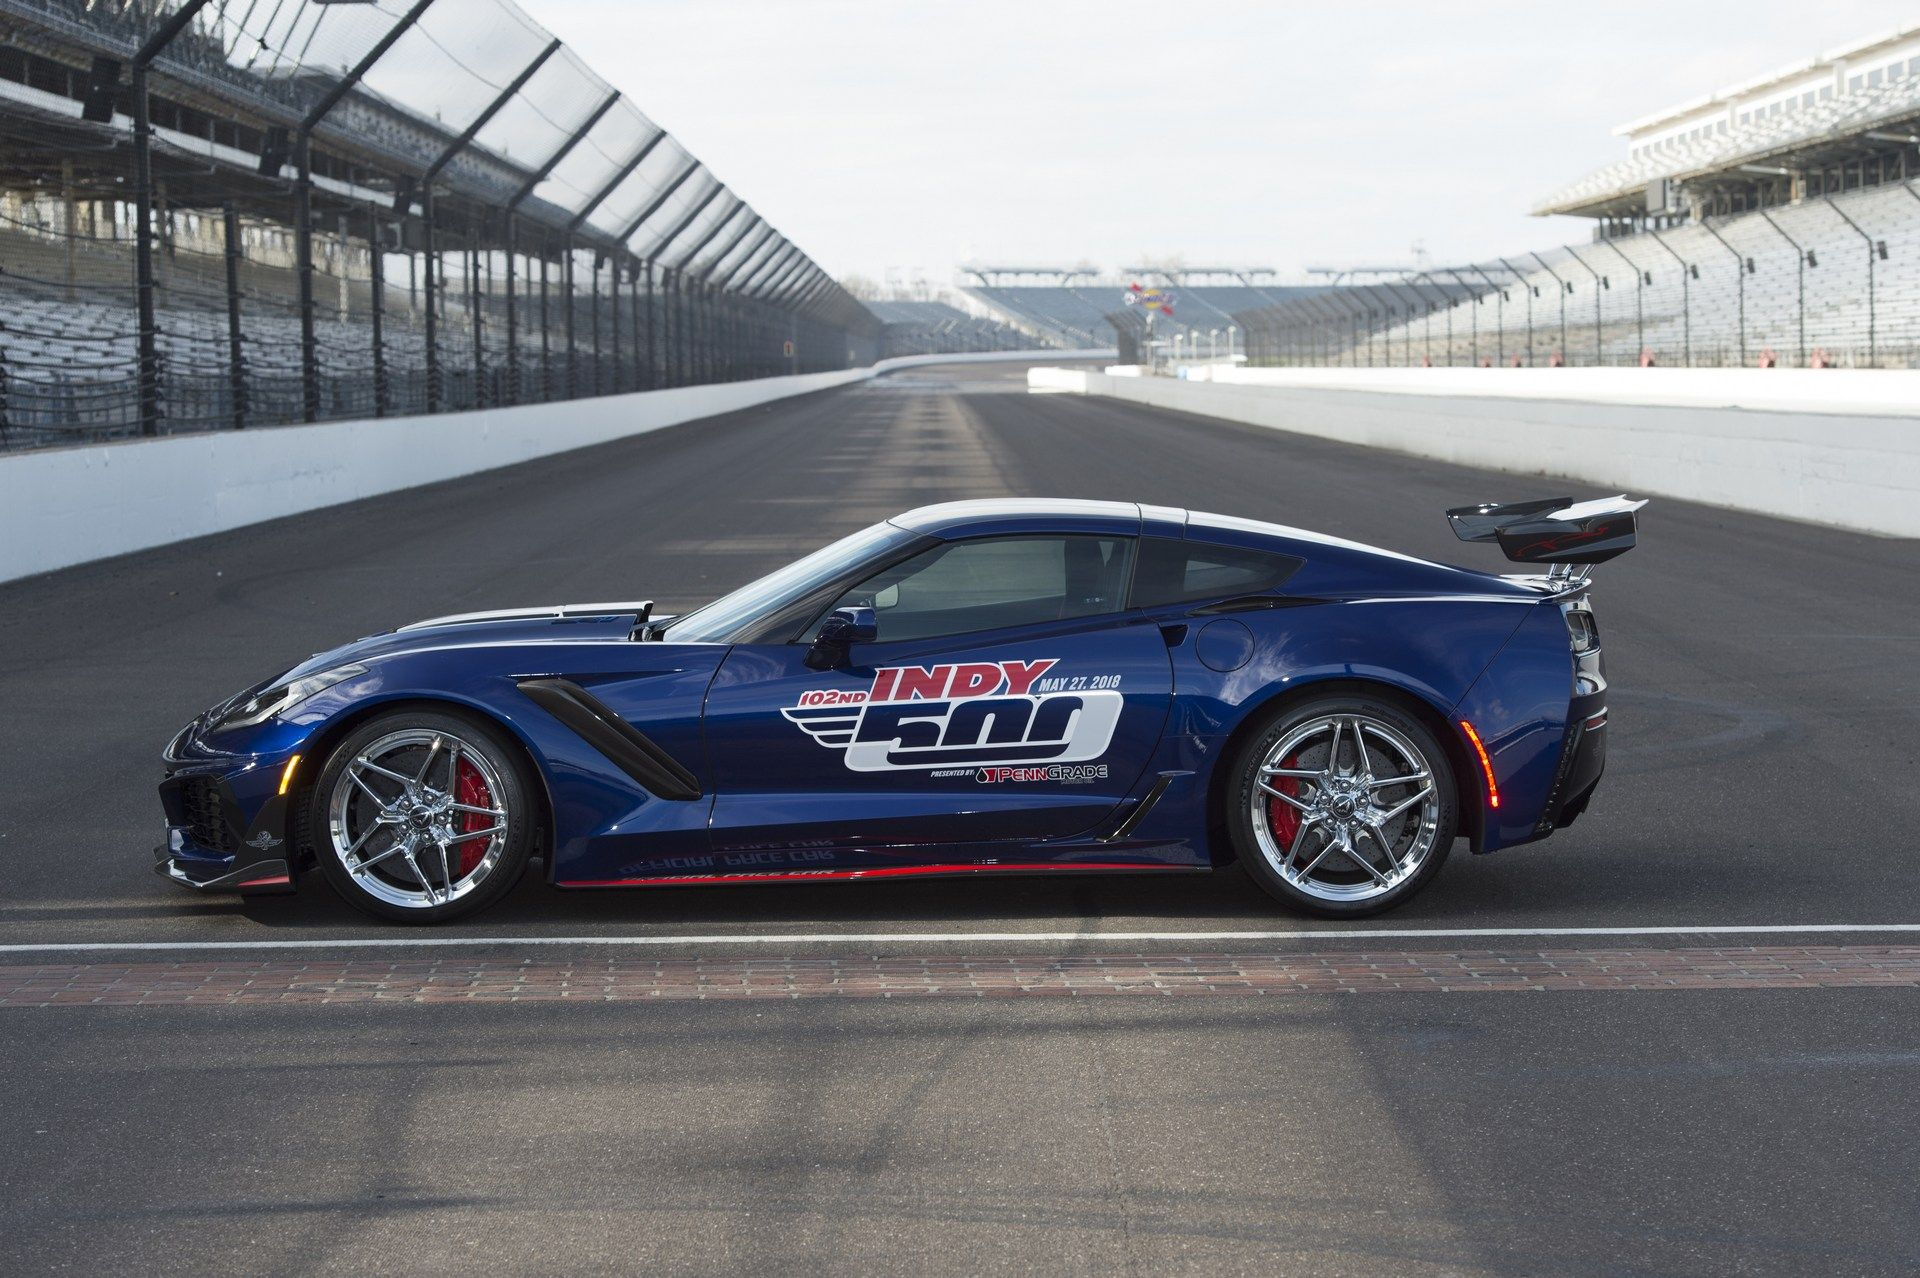 Chevy Corvette ZR1 will pace the 2018 Indianapolis 500